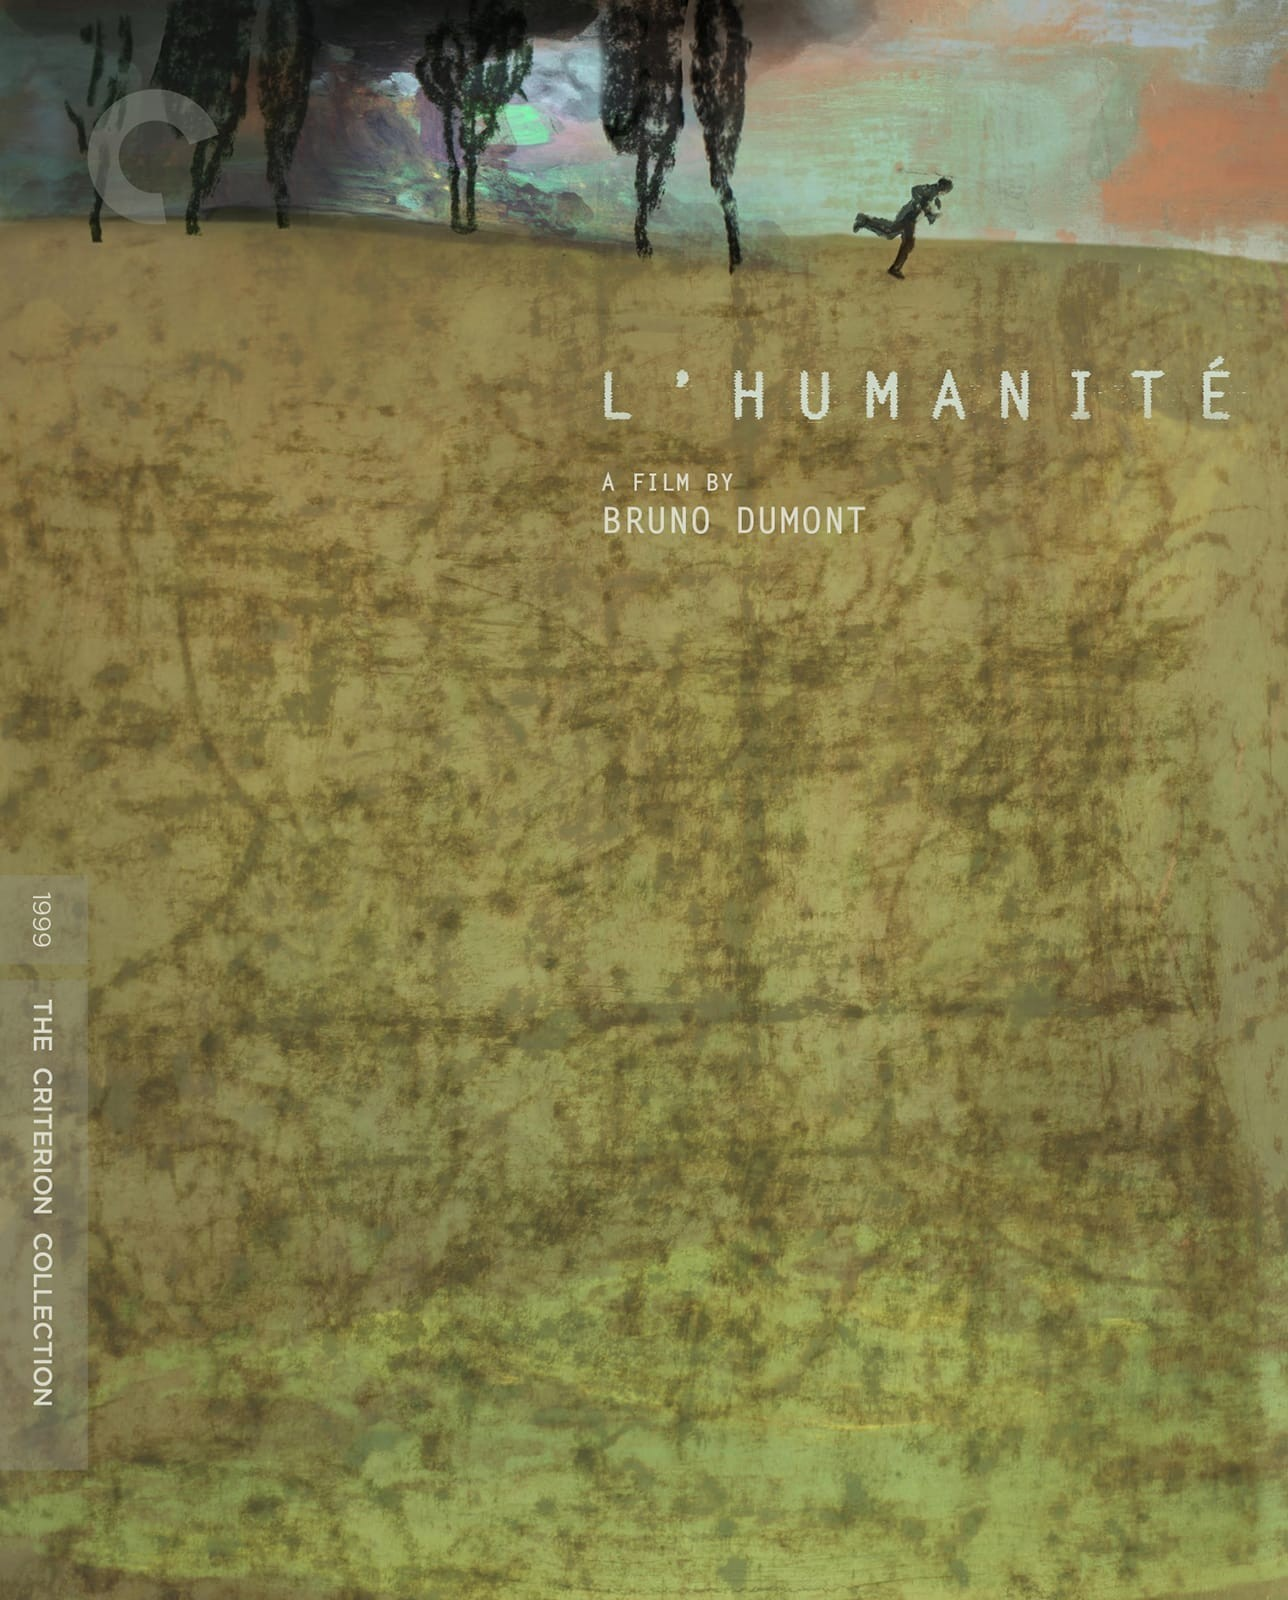 L'humanité (The Criterion Collection)(Blu-ray)(Region A)(Pre-order / Jun 18)